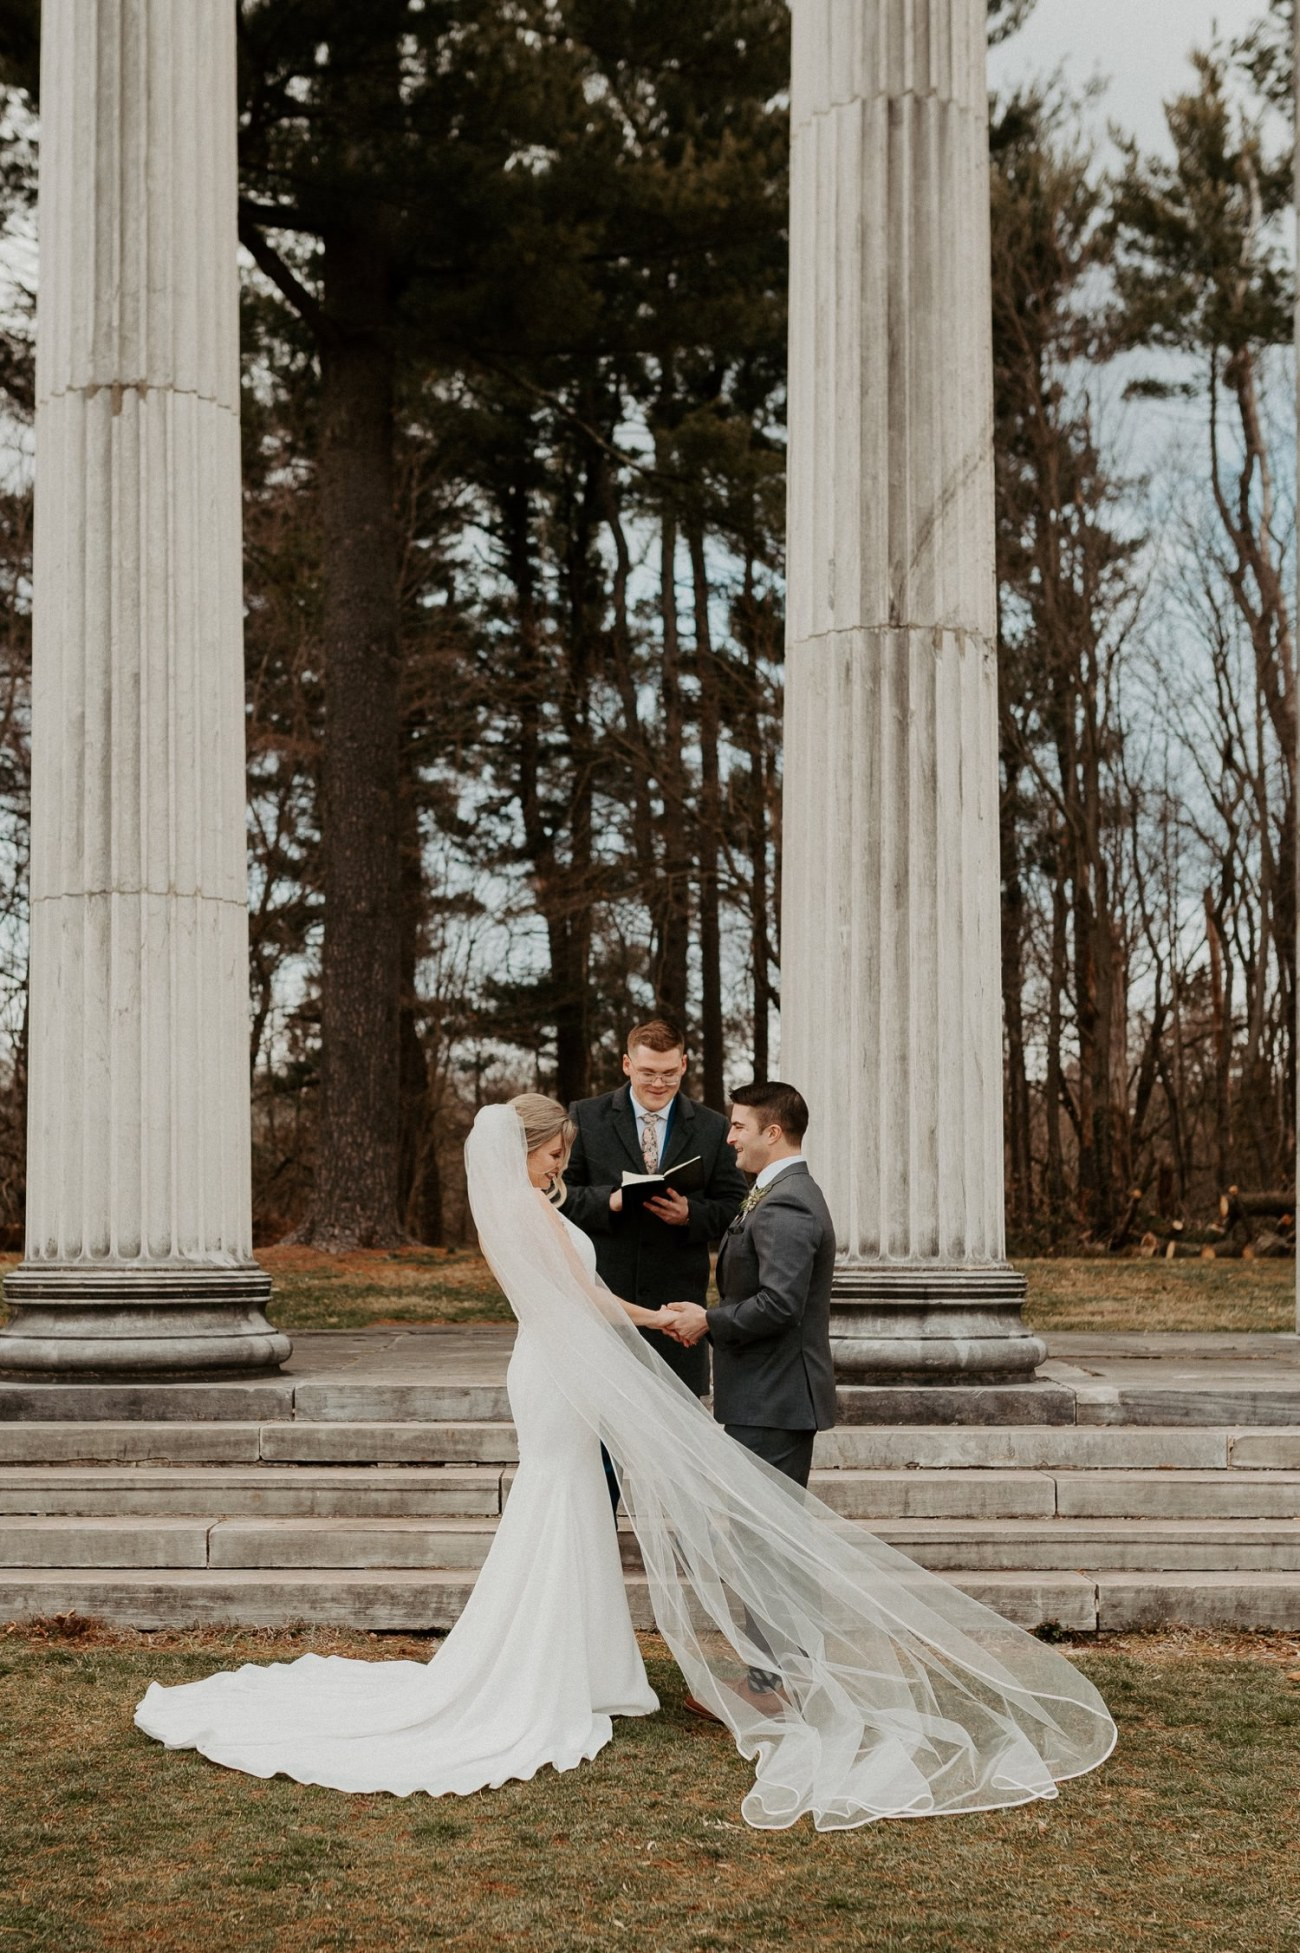 Princeton Battlefield Wedding Princeton University Elopement New Jersey Wedding Photographer Anais Possamai Photography 13